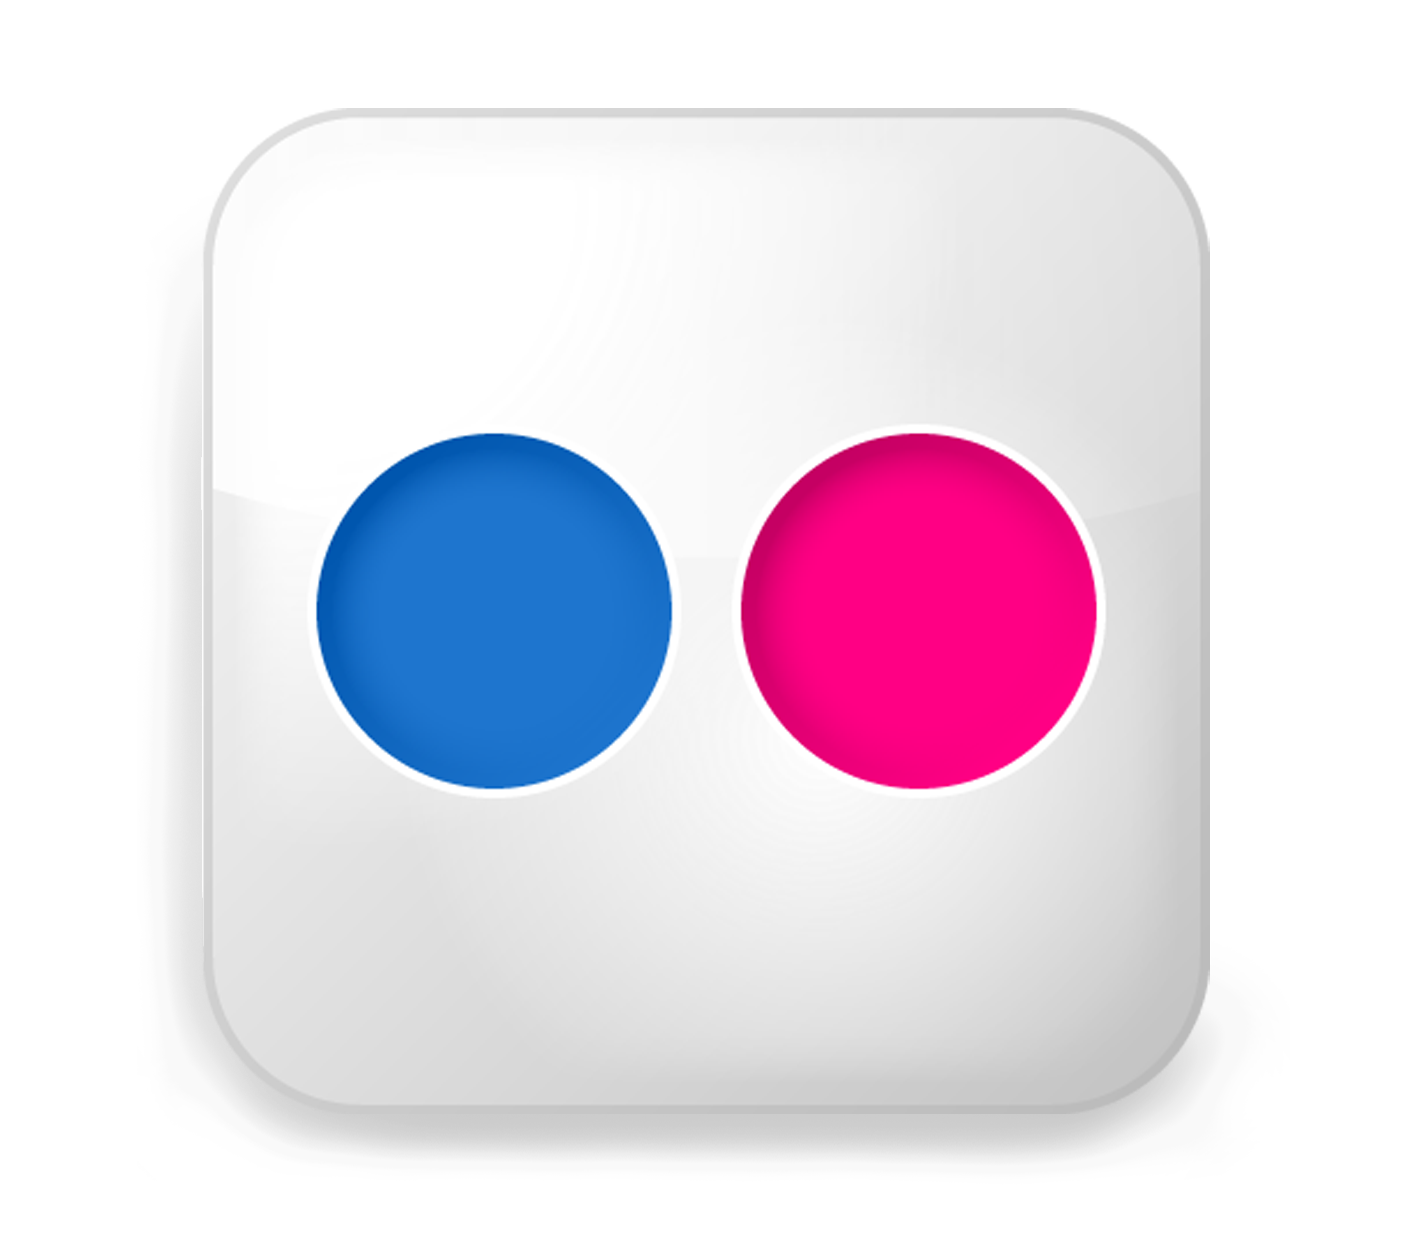 transparent flickr logo icon